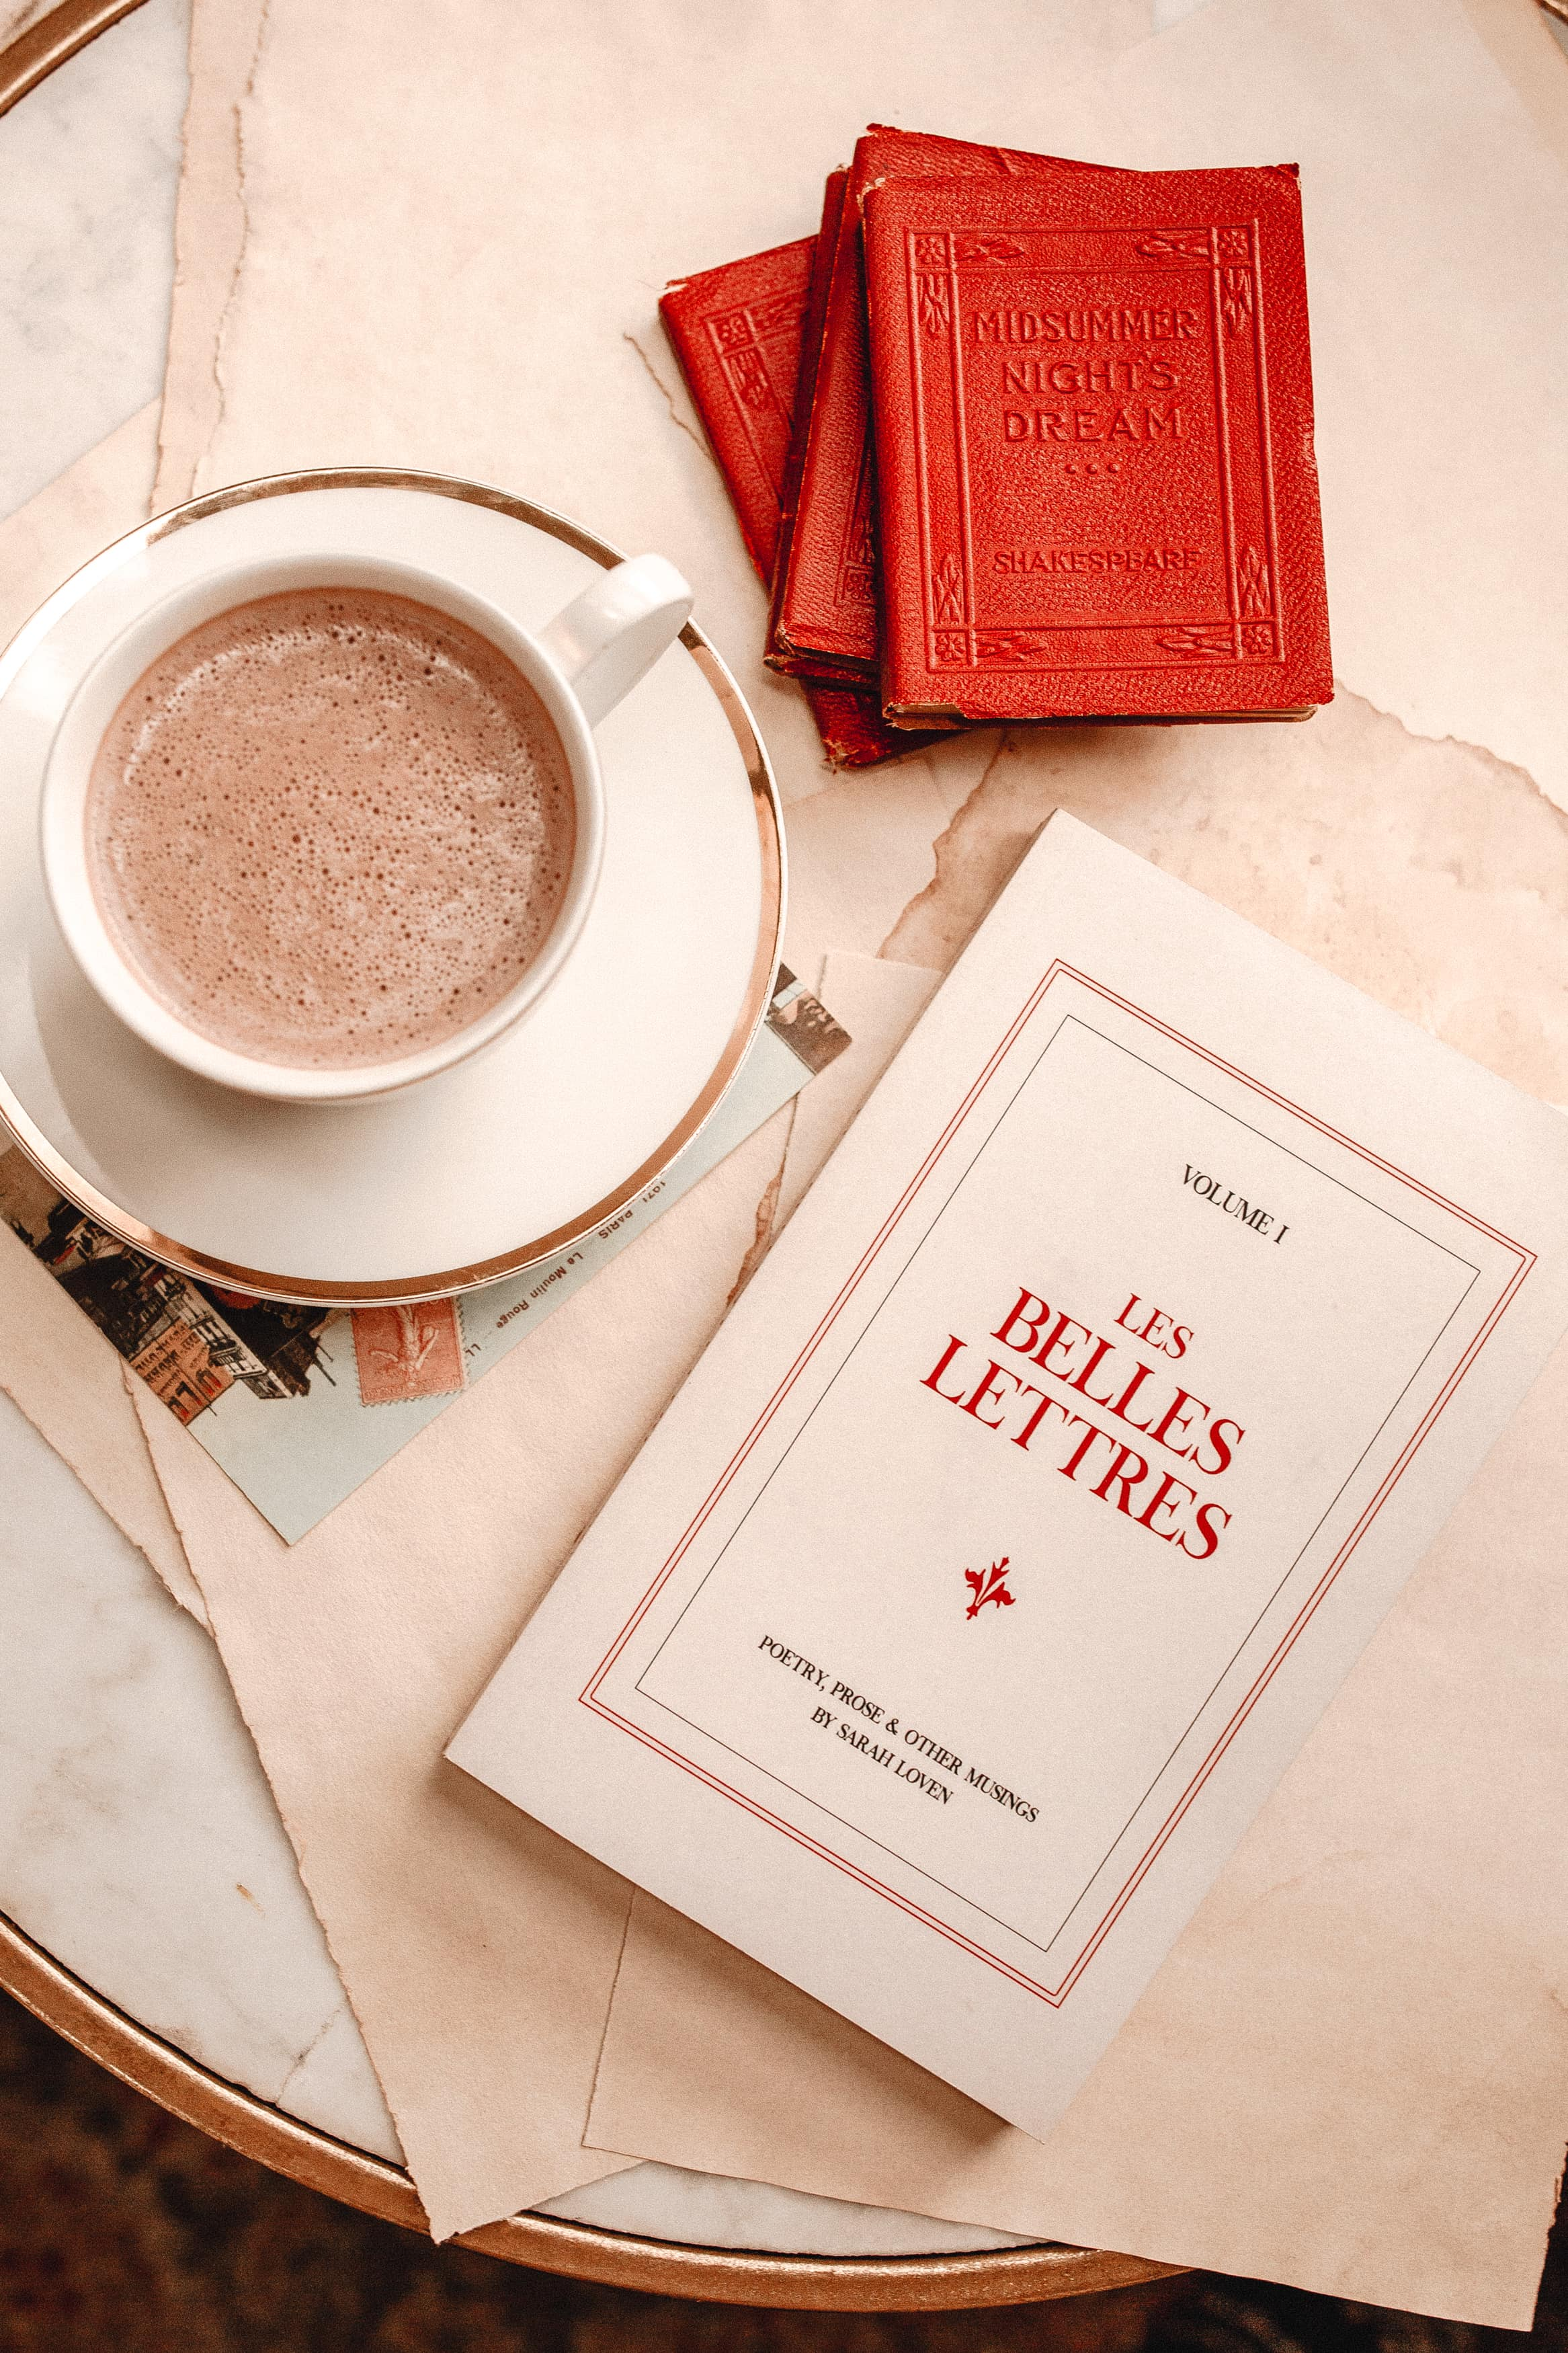 Les Belles Lettres book of poetry & prose by Sarah Loven